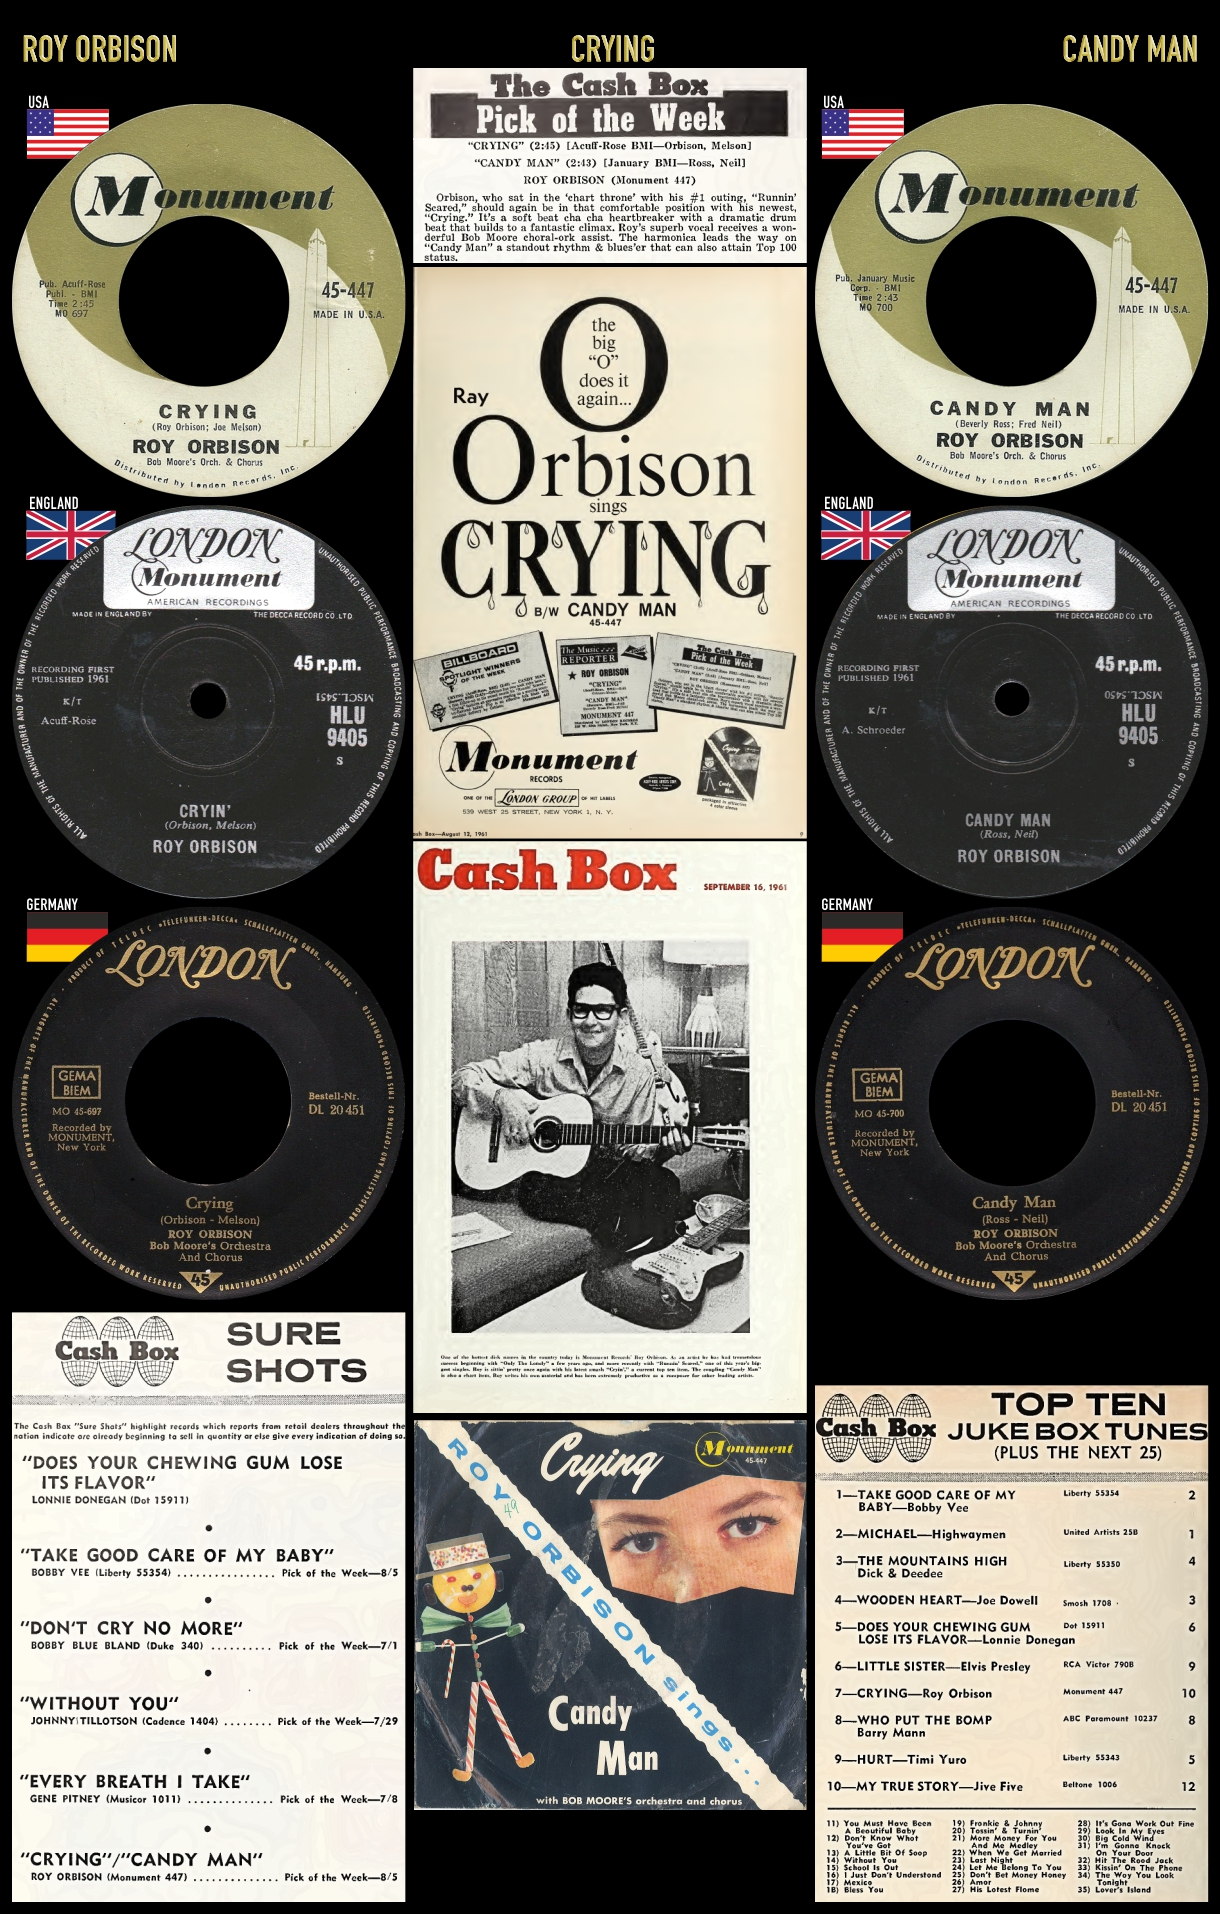 610805_Roy Orbison_Candy Man_Crying